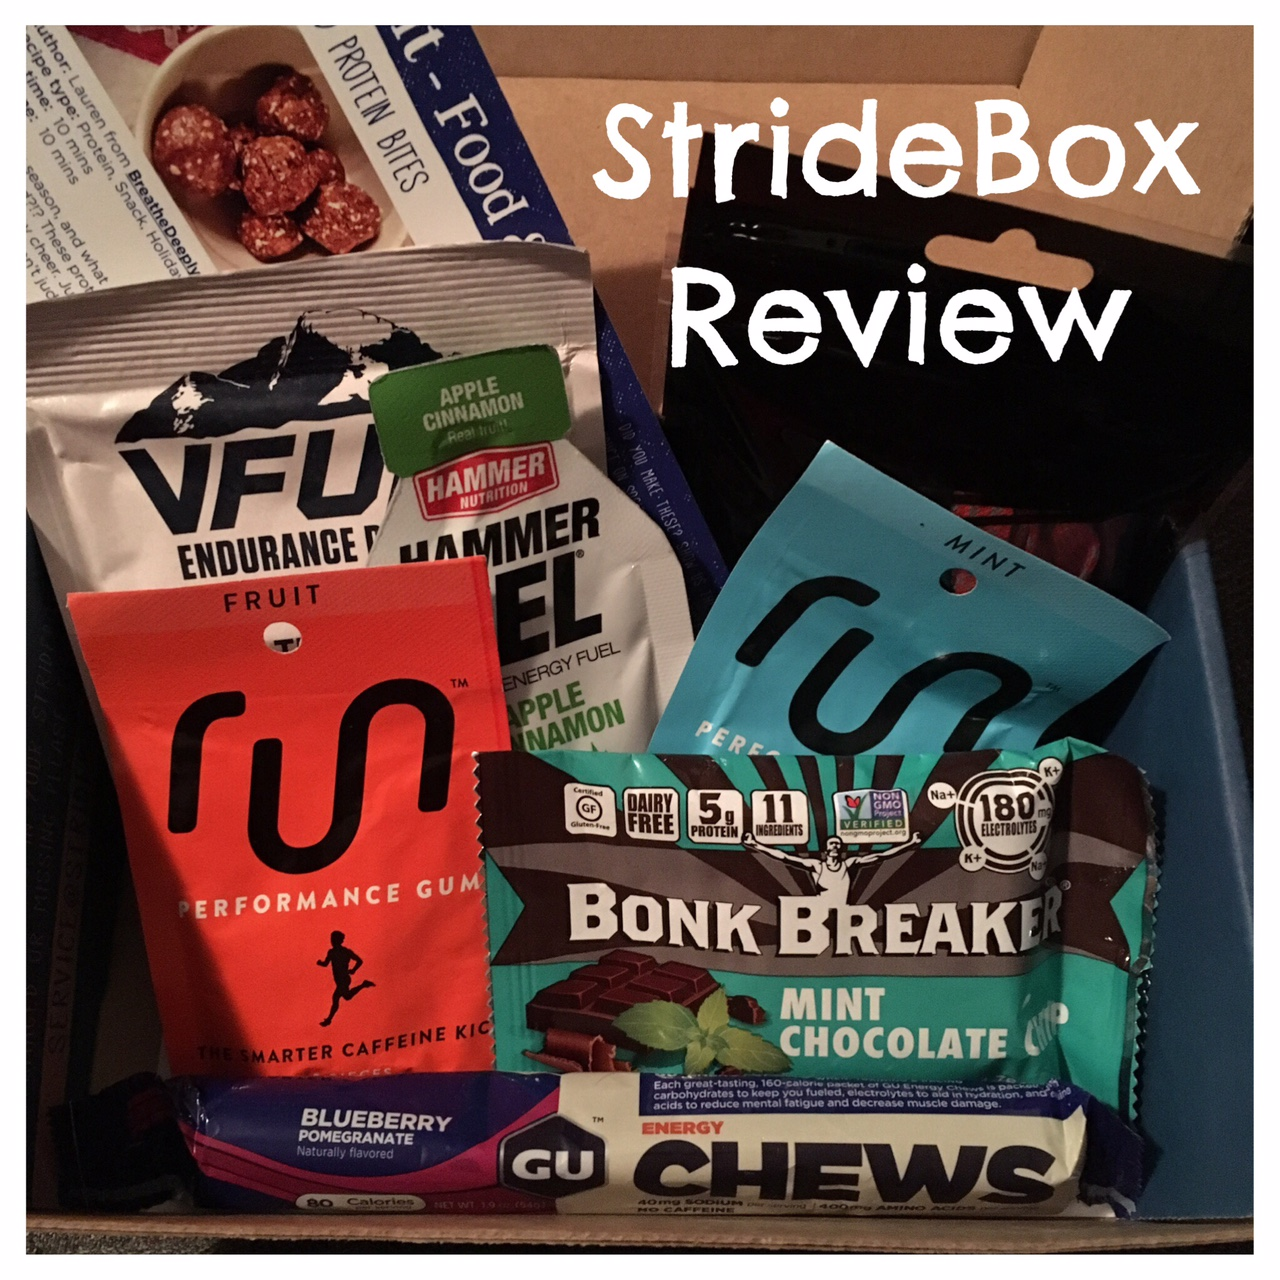 My StrideBox Review